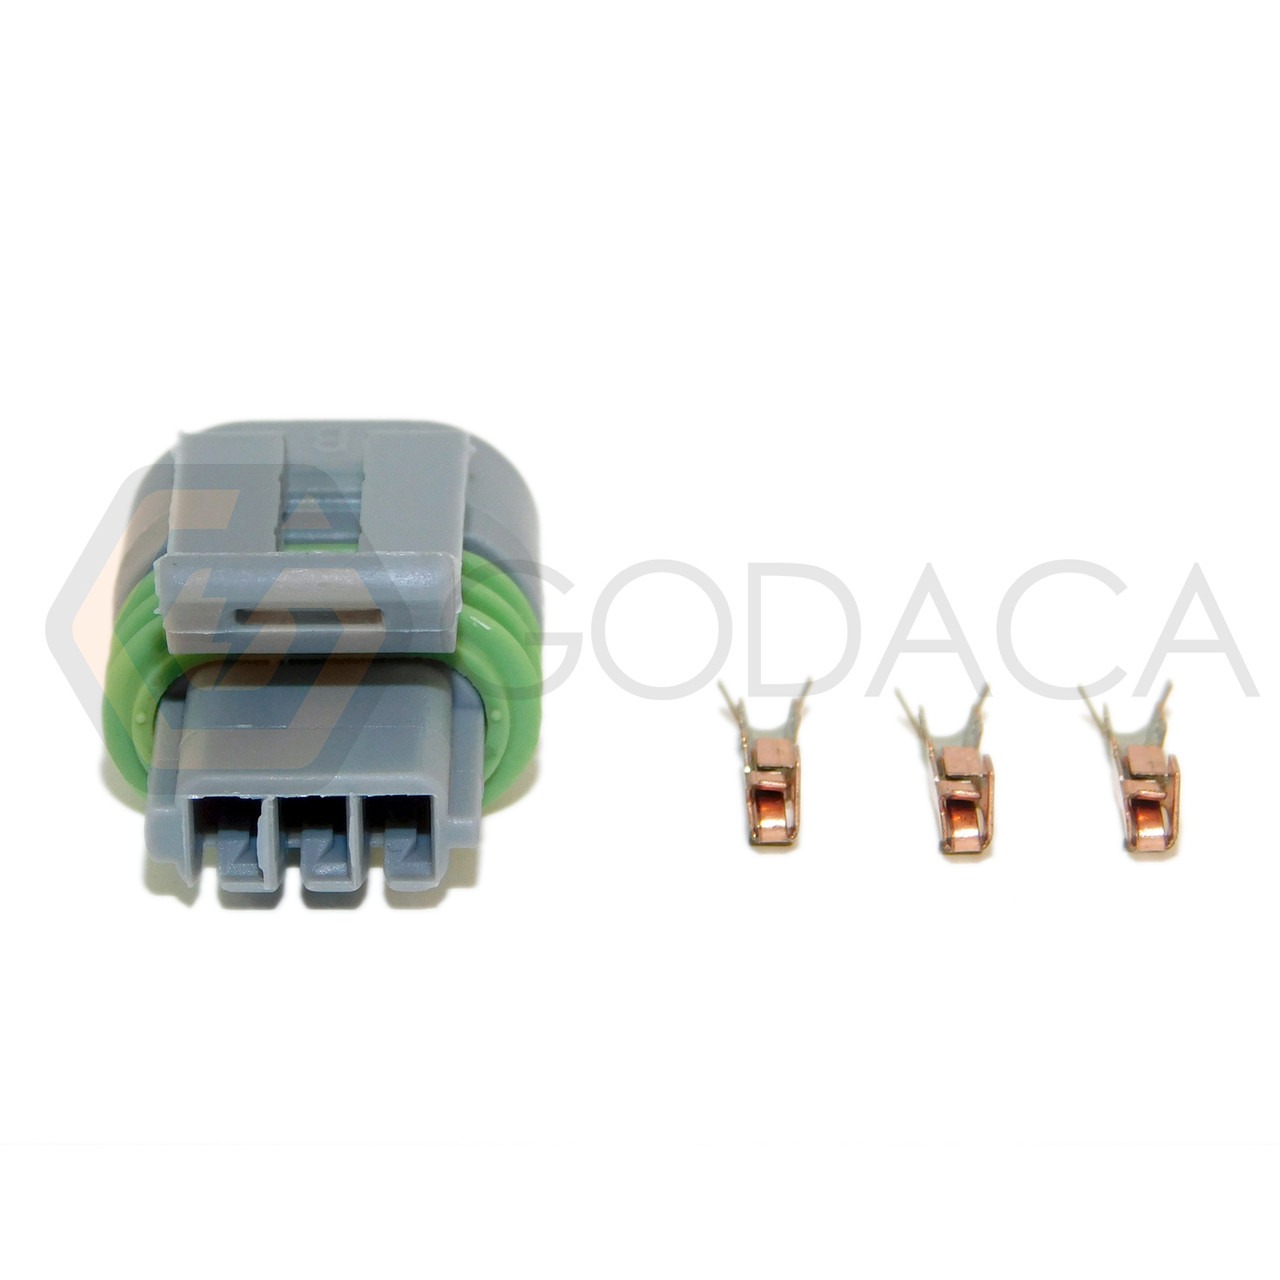 medium resolution of 1x connector 3 way for gm camshaft position sensor cps pt148 w out wire godaca llc